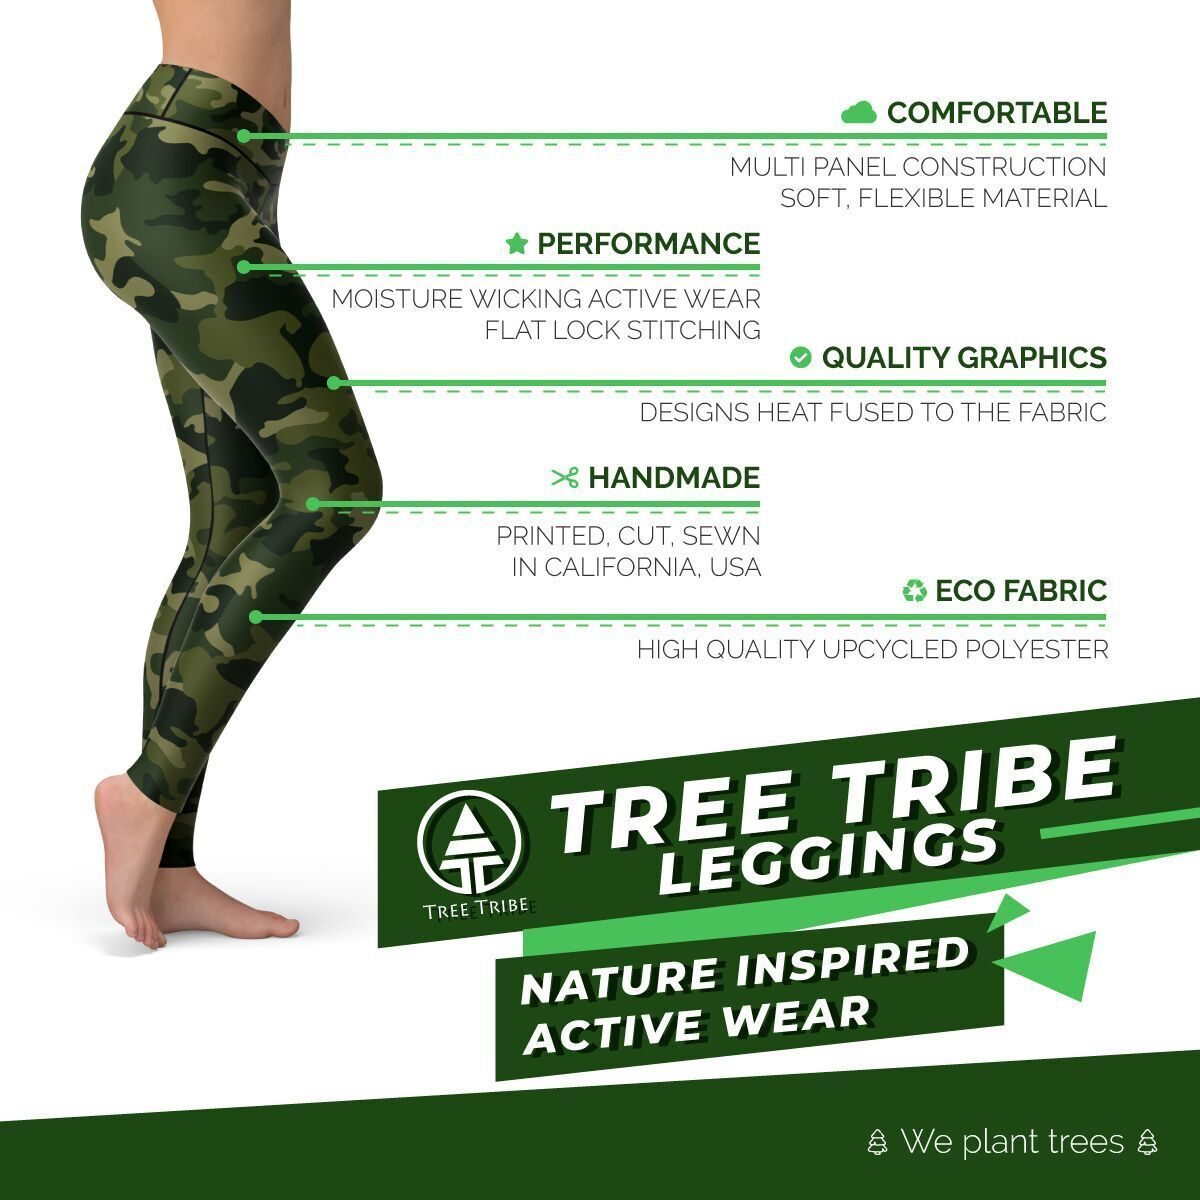 Tree Tribe leggings features